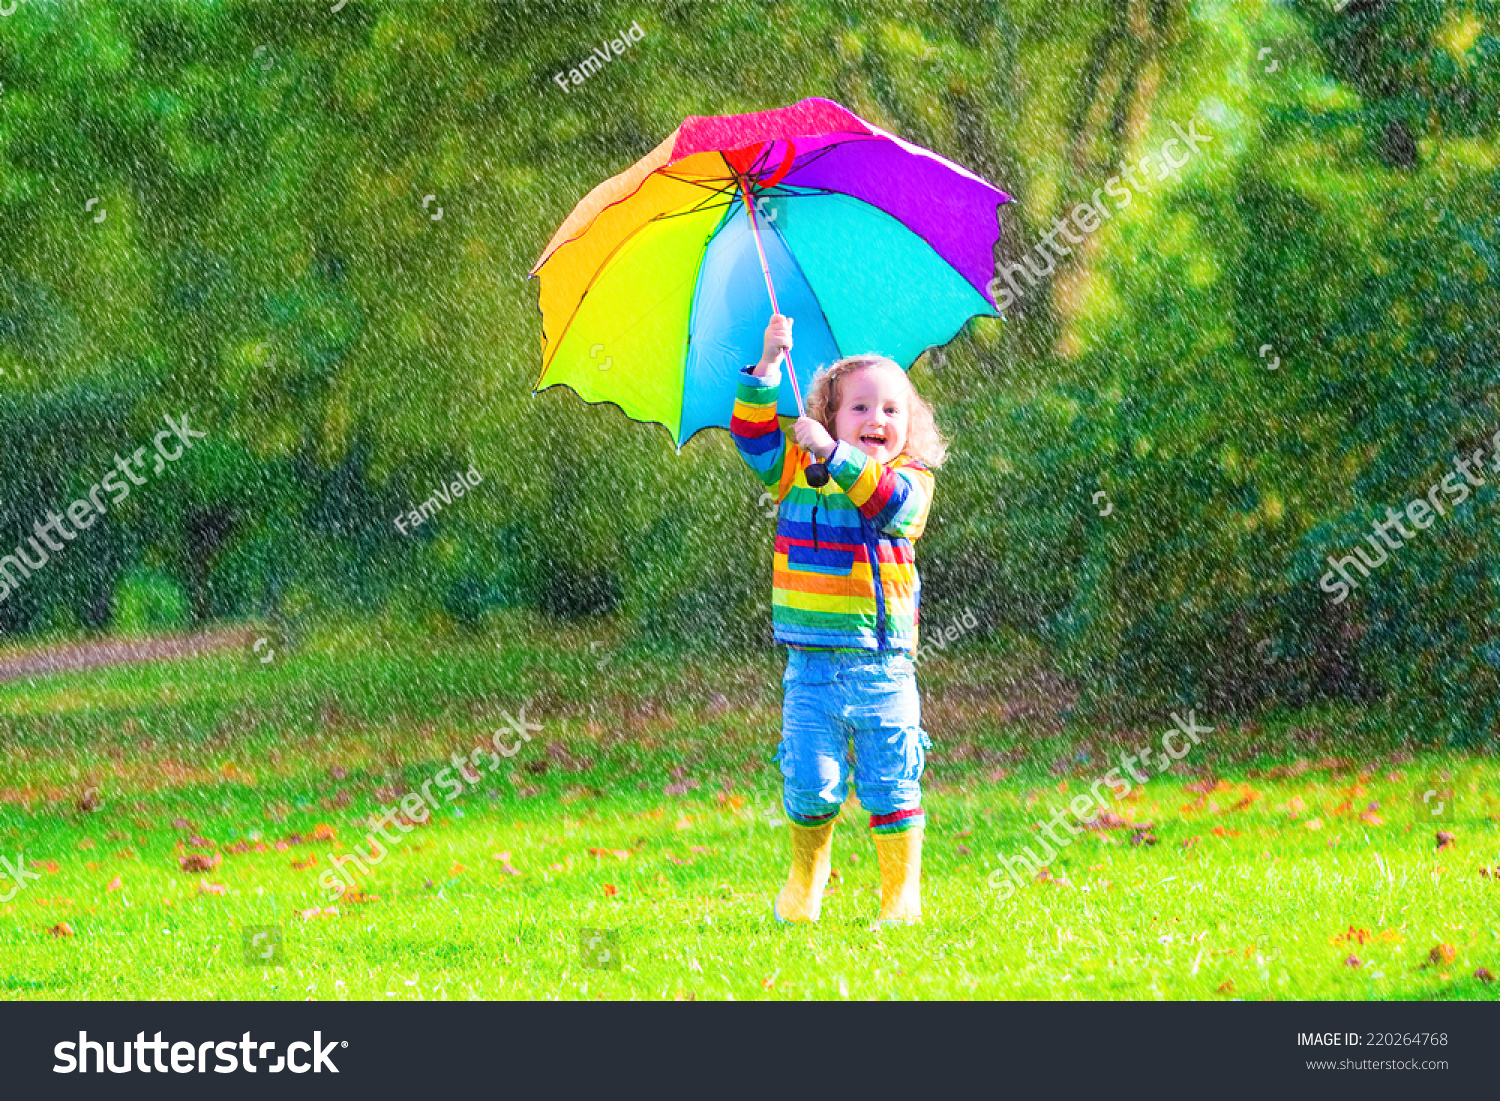 Funny cute curly toddler girl wearing yellow waterproof coat and boots  holding colorful umbrella playing in cf34034ad79e